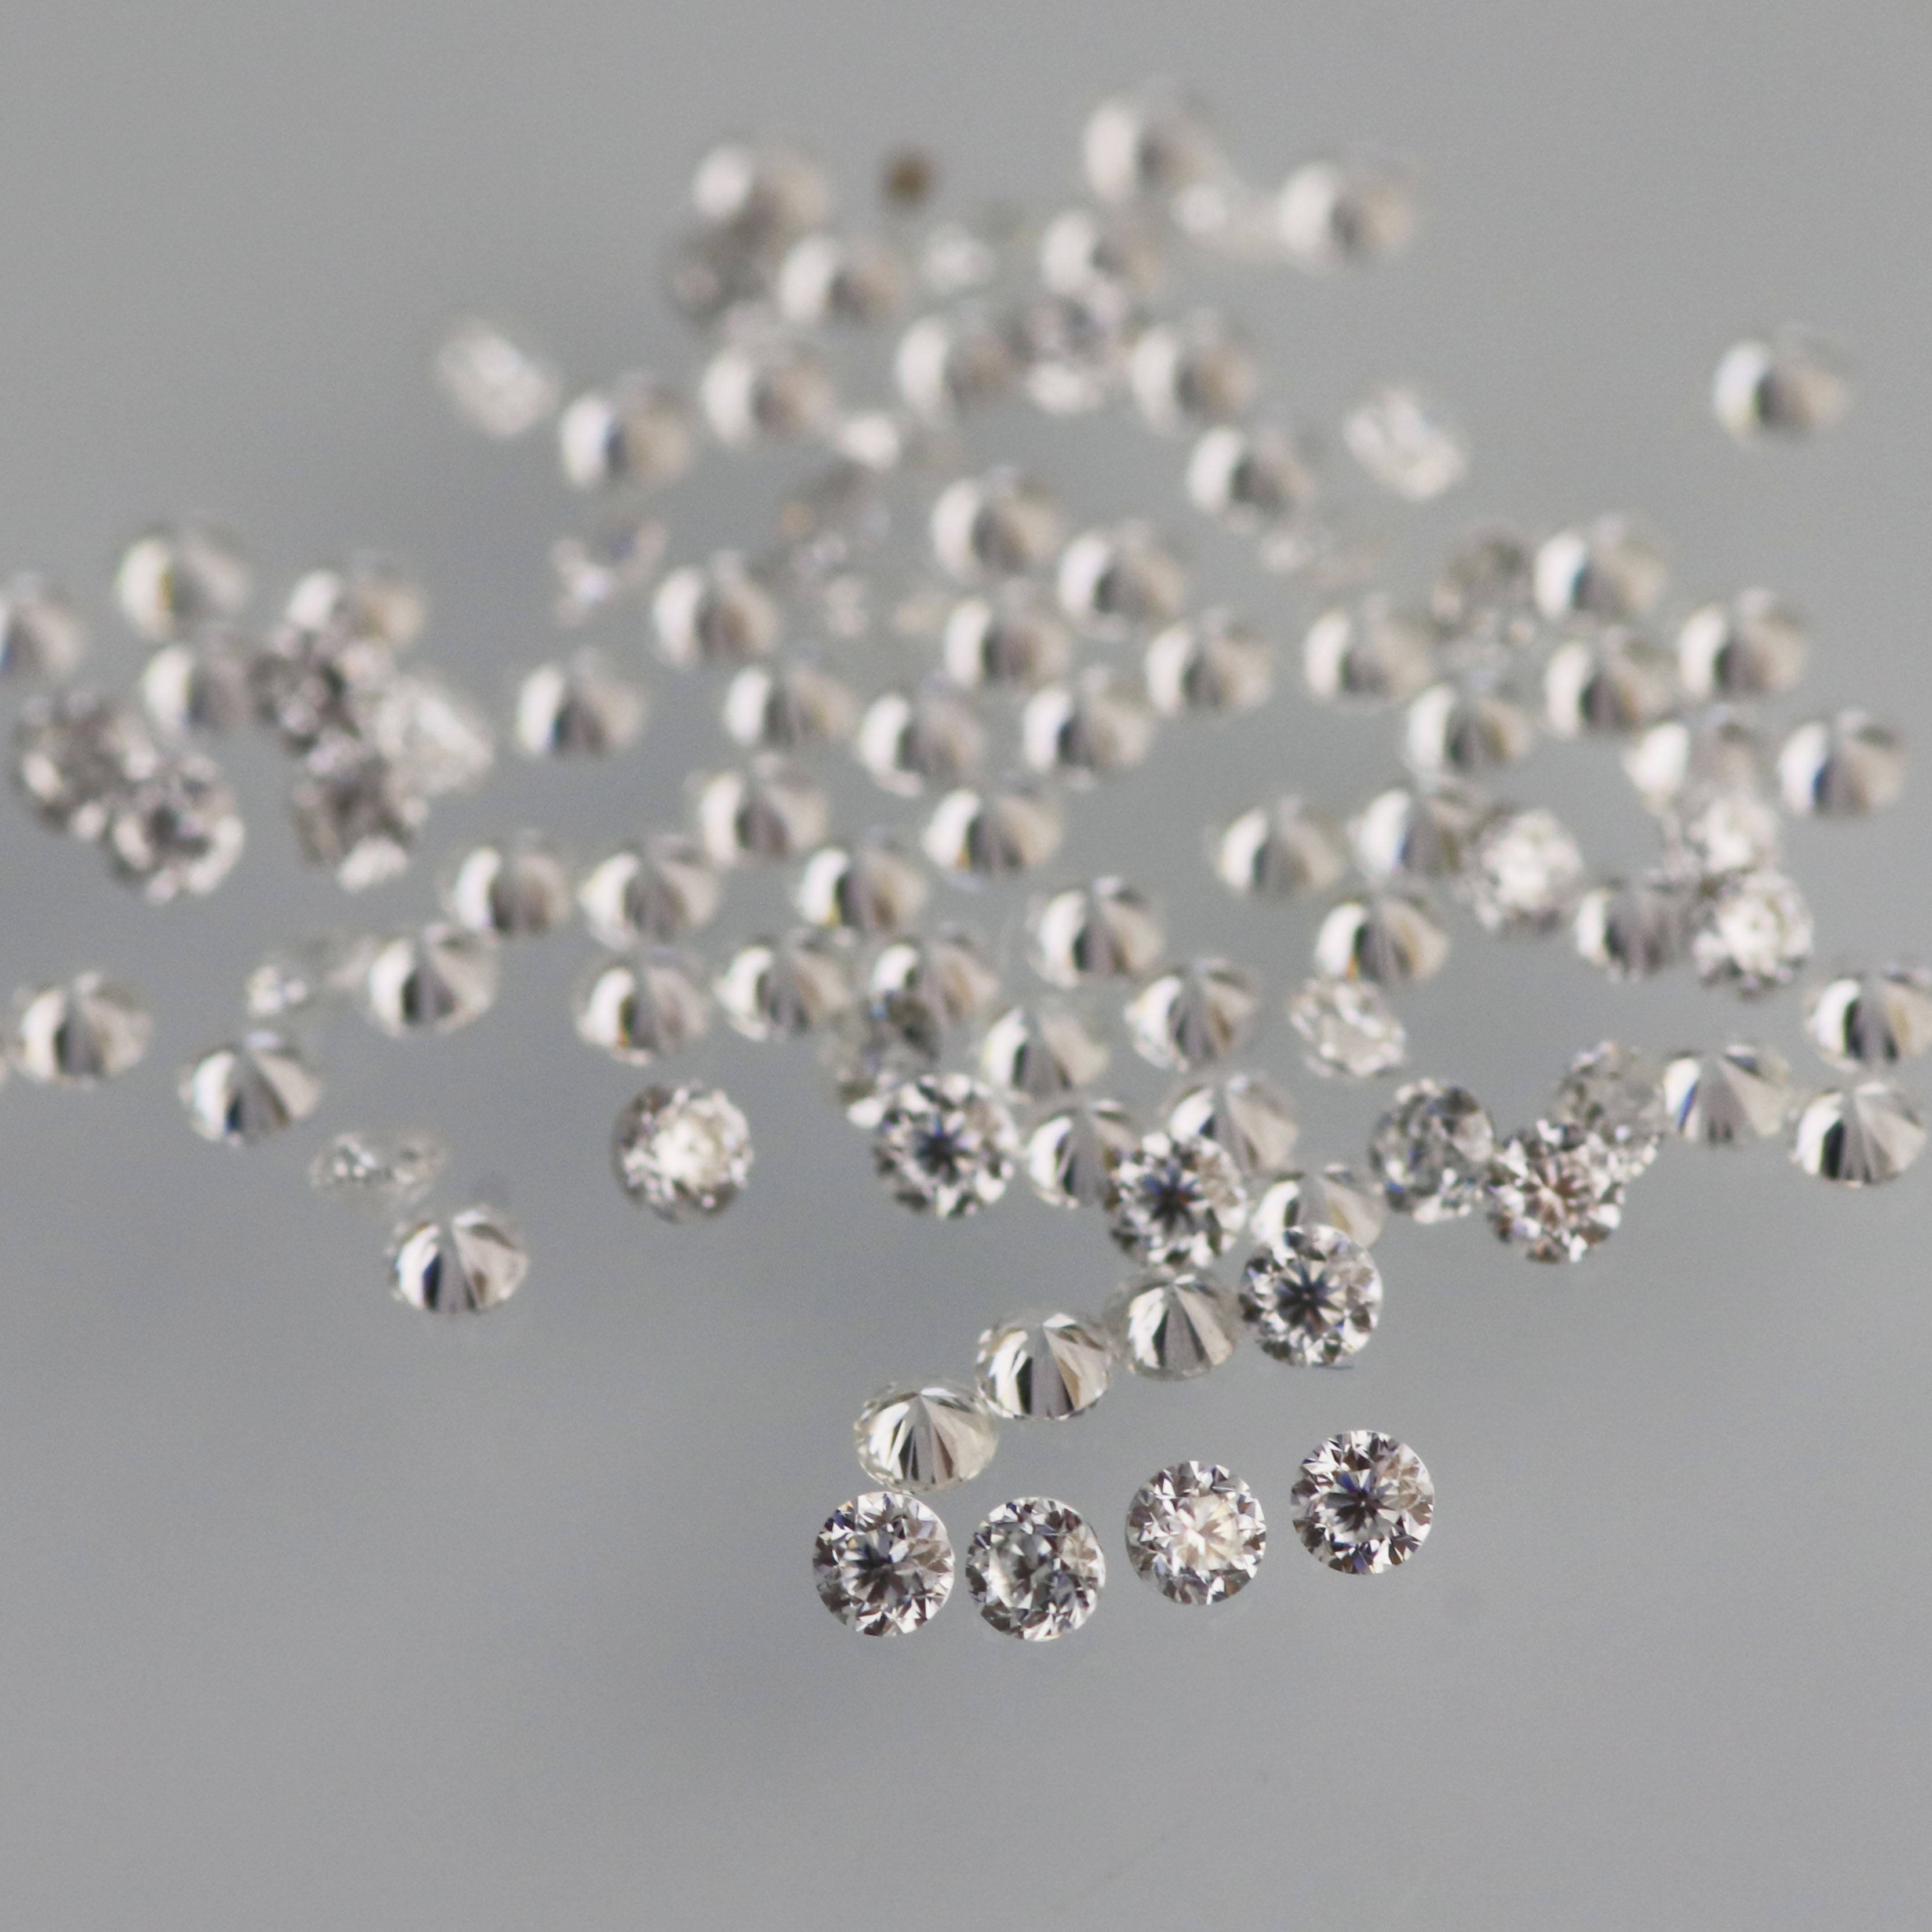 1mm 1.2mm 1.3mm 1.4mm 1.5mm 2mm 3mm DEF VVS round shape moissanite stone